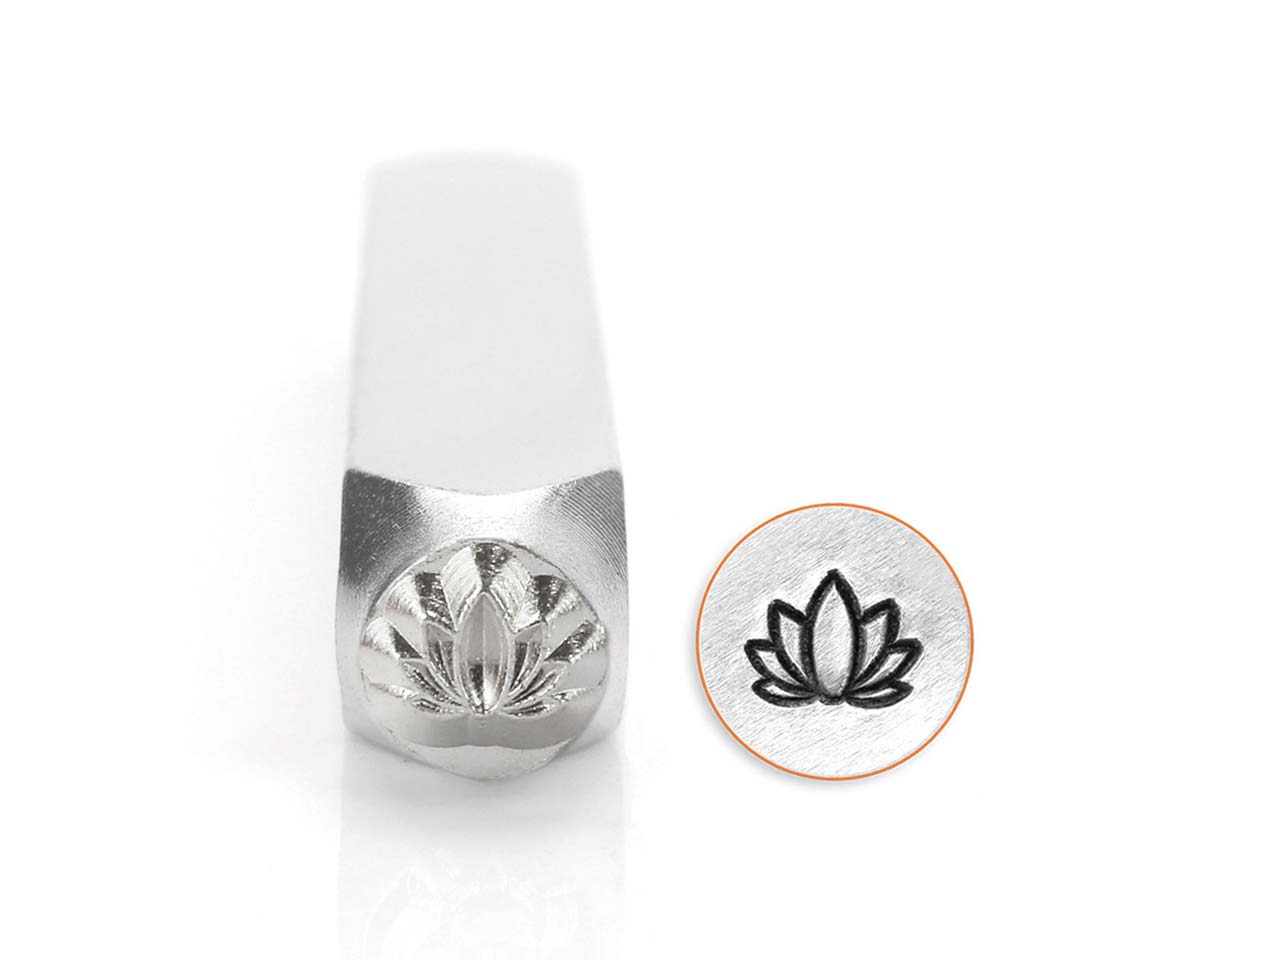 Poinçon ImpressArt, motif Lotus, 6 mm